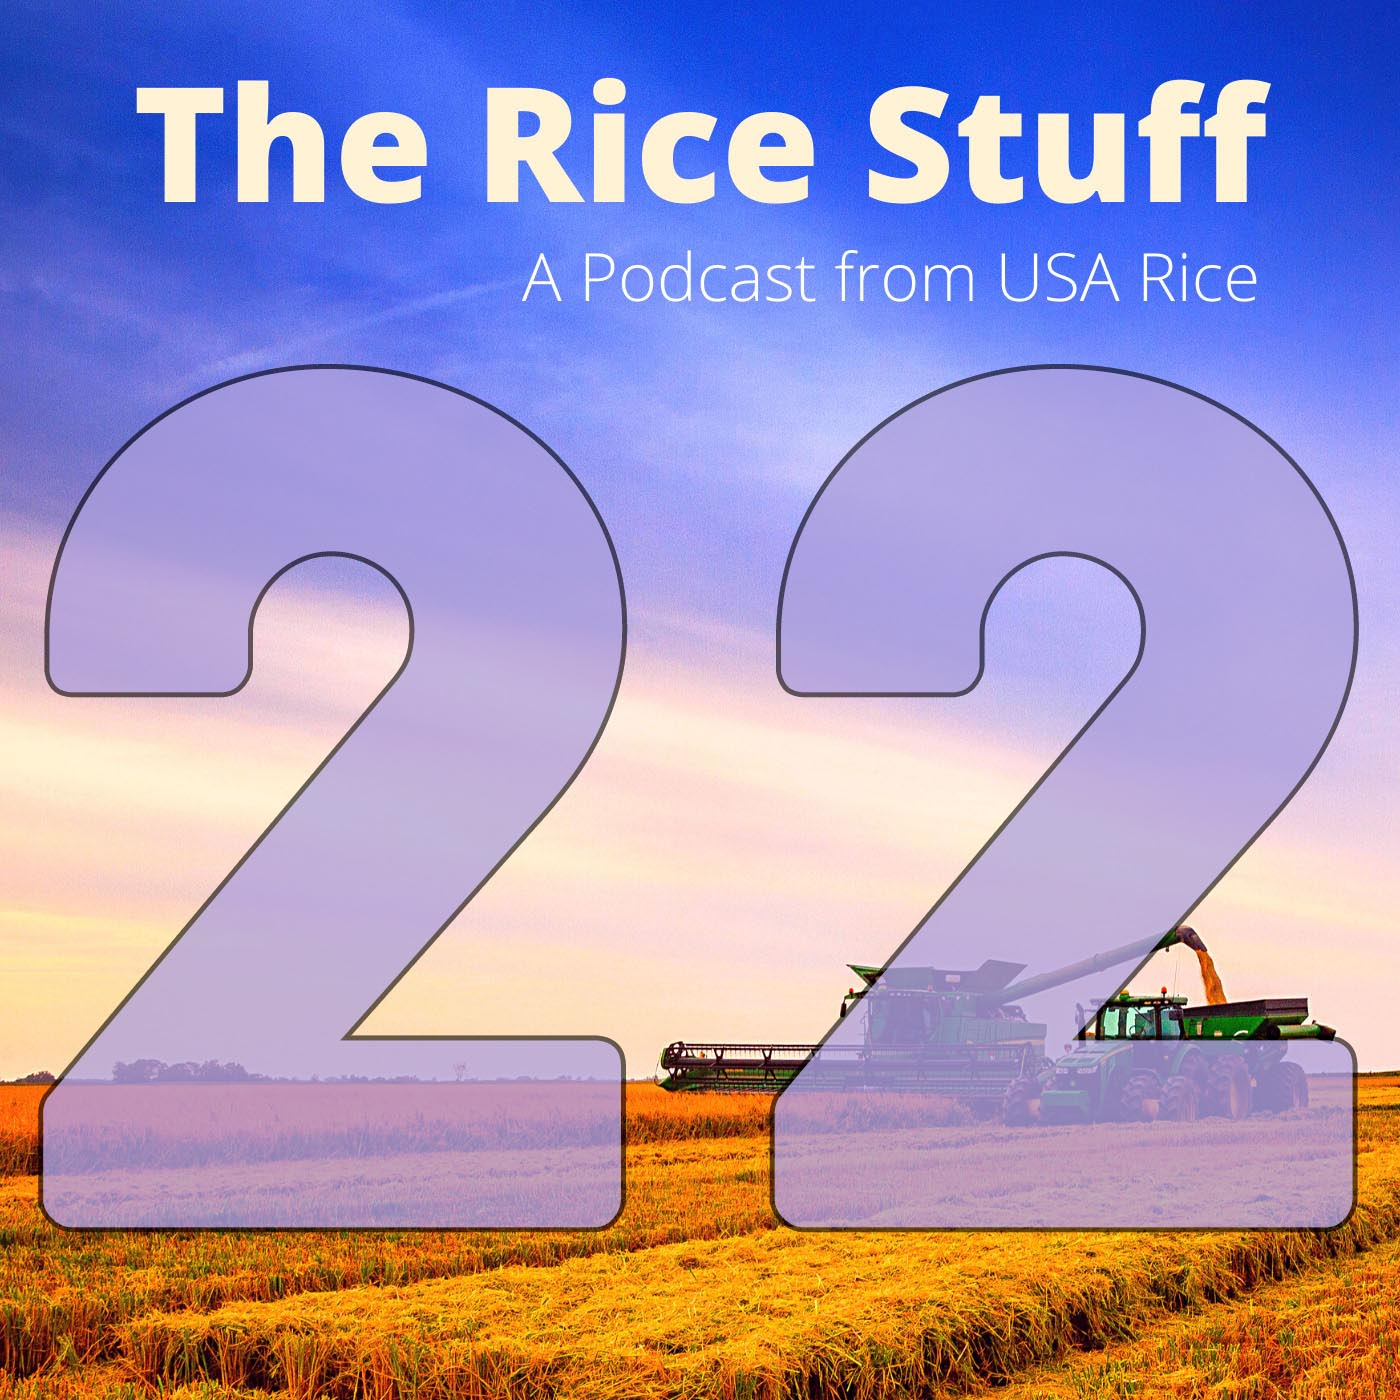 COMM-The Rice Stuff Tile Final Ep-22-210525